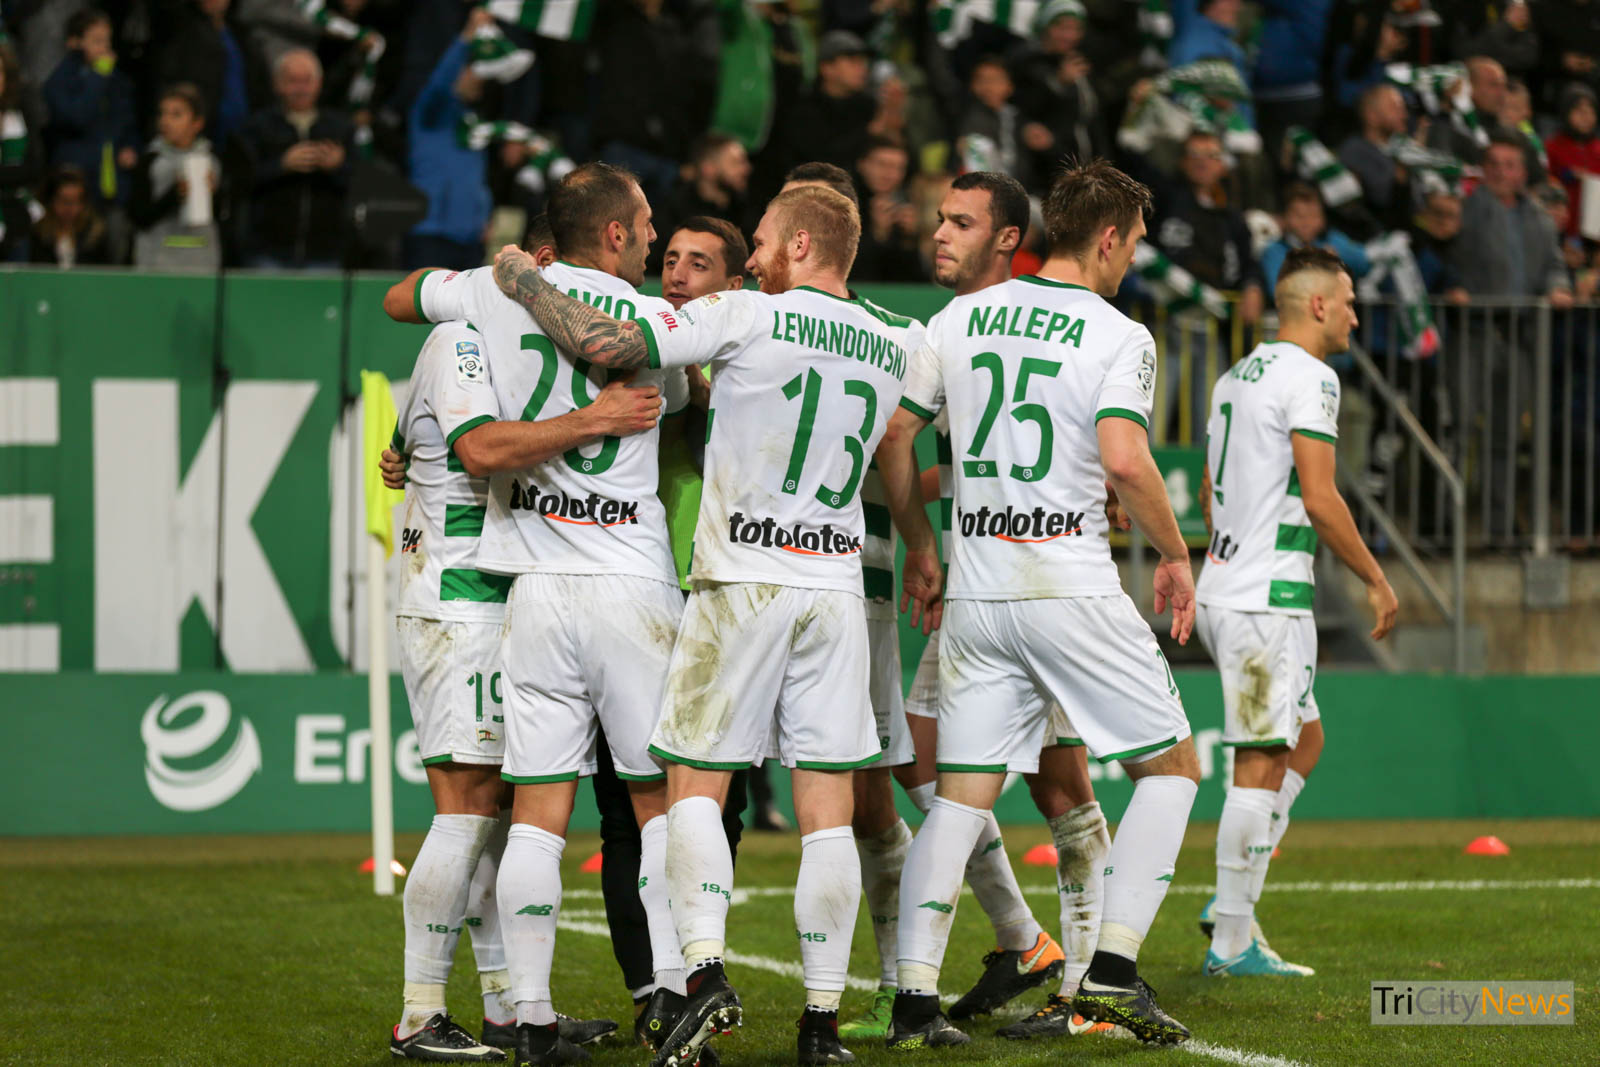 Lechia Gdansk home match photo: Luca Aliano/Tricity News